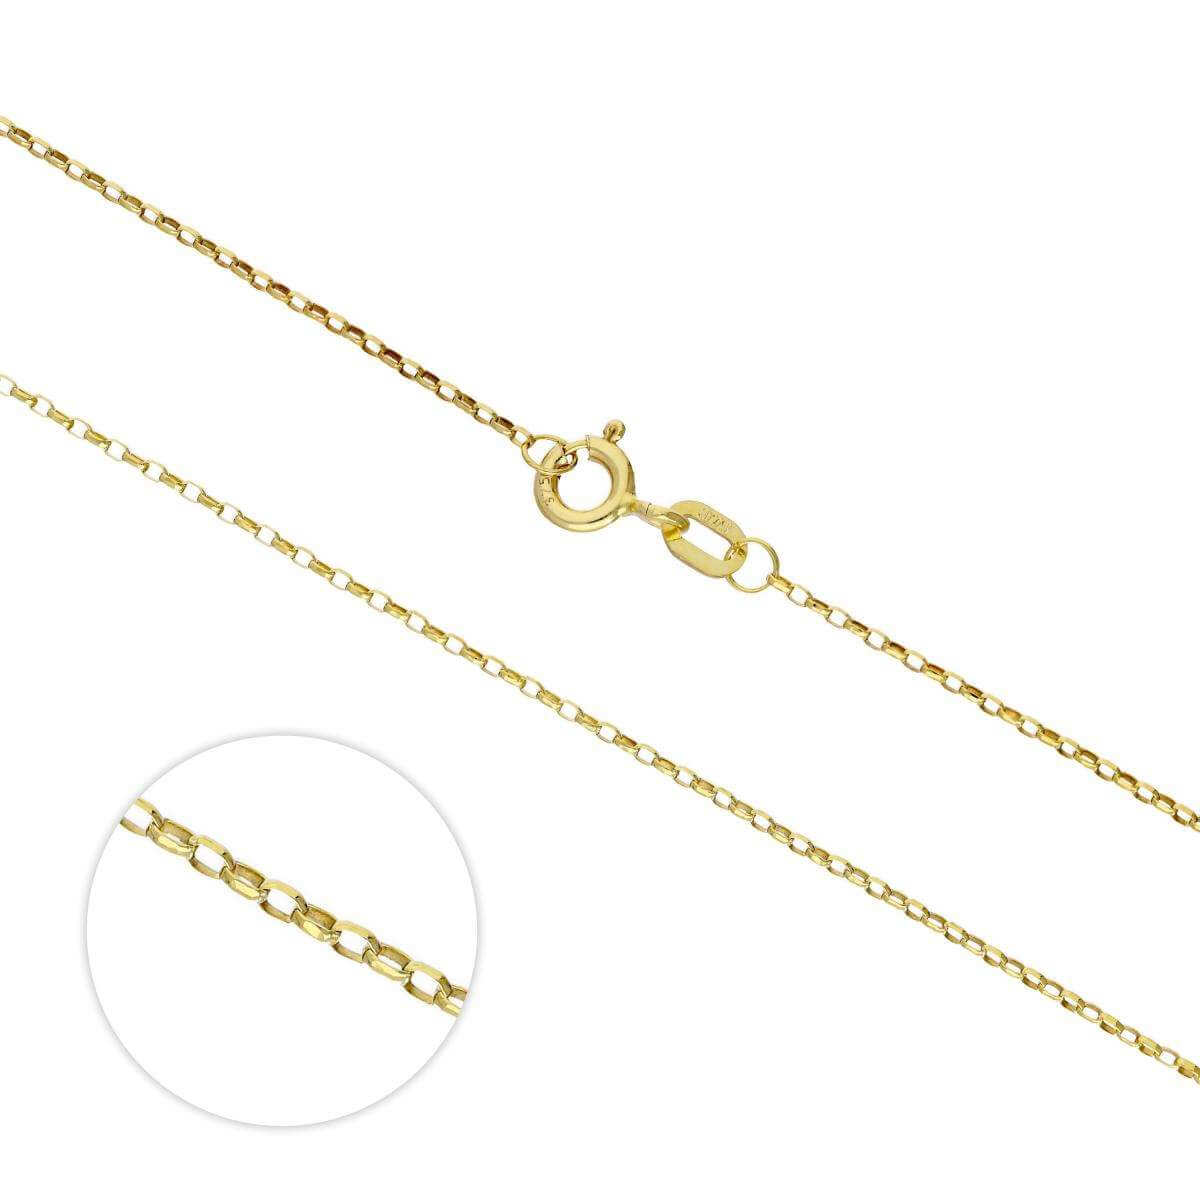 9ct Gold Lightweight Diamond Cut Belcher Chain 16 - 20 Inches